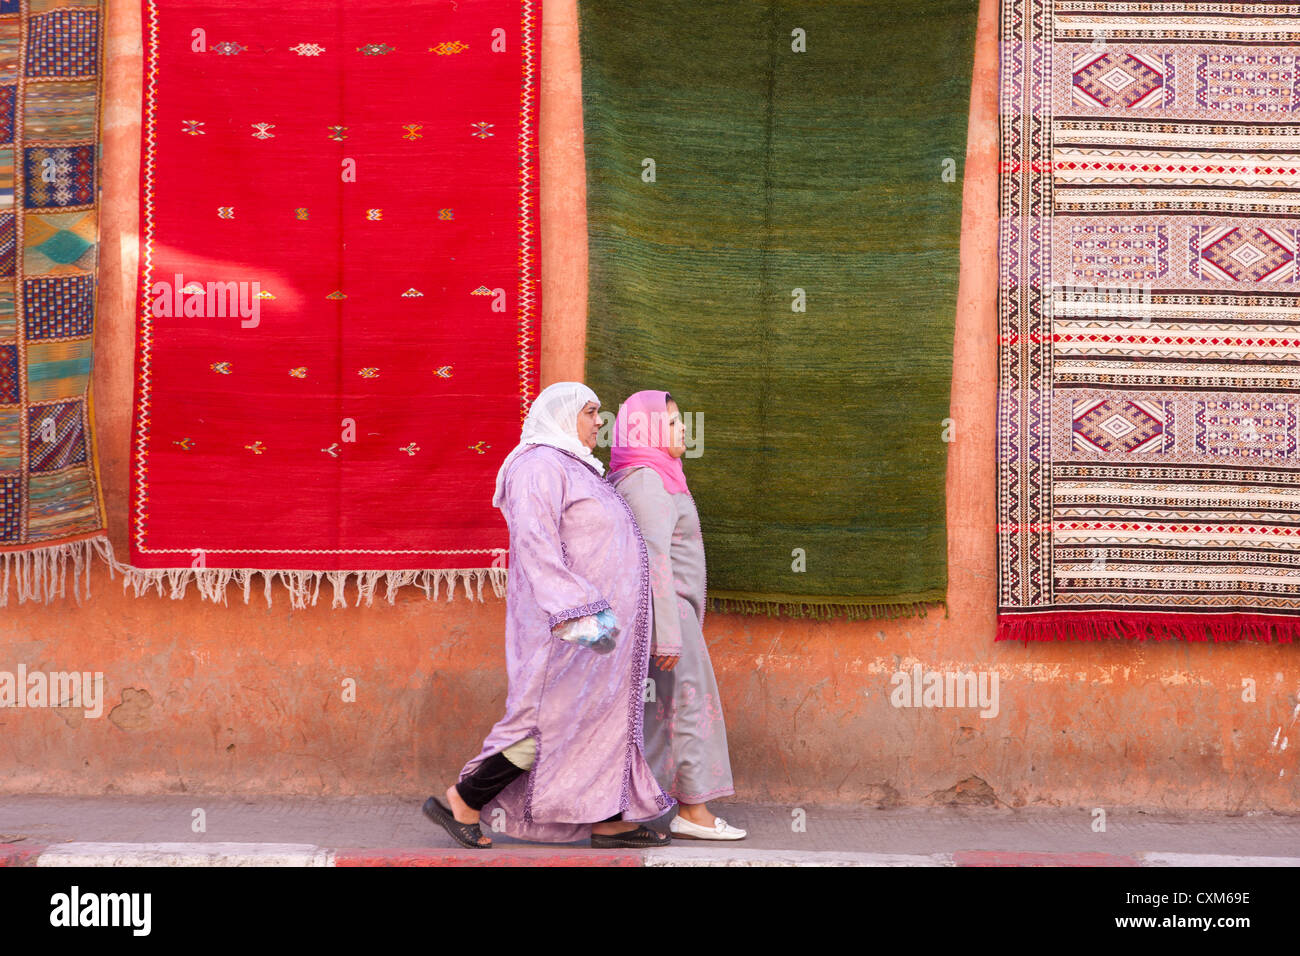 Two women walking along pavement with carpets hanging on wall behind them, Marrakech, Morocco - Stock Image